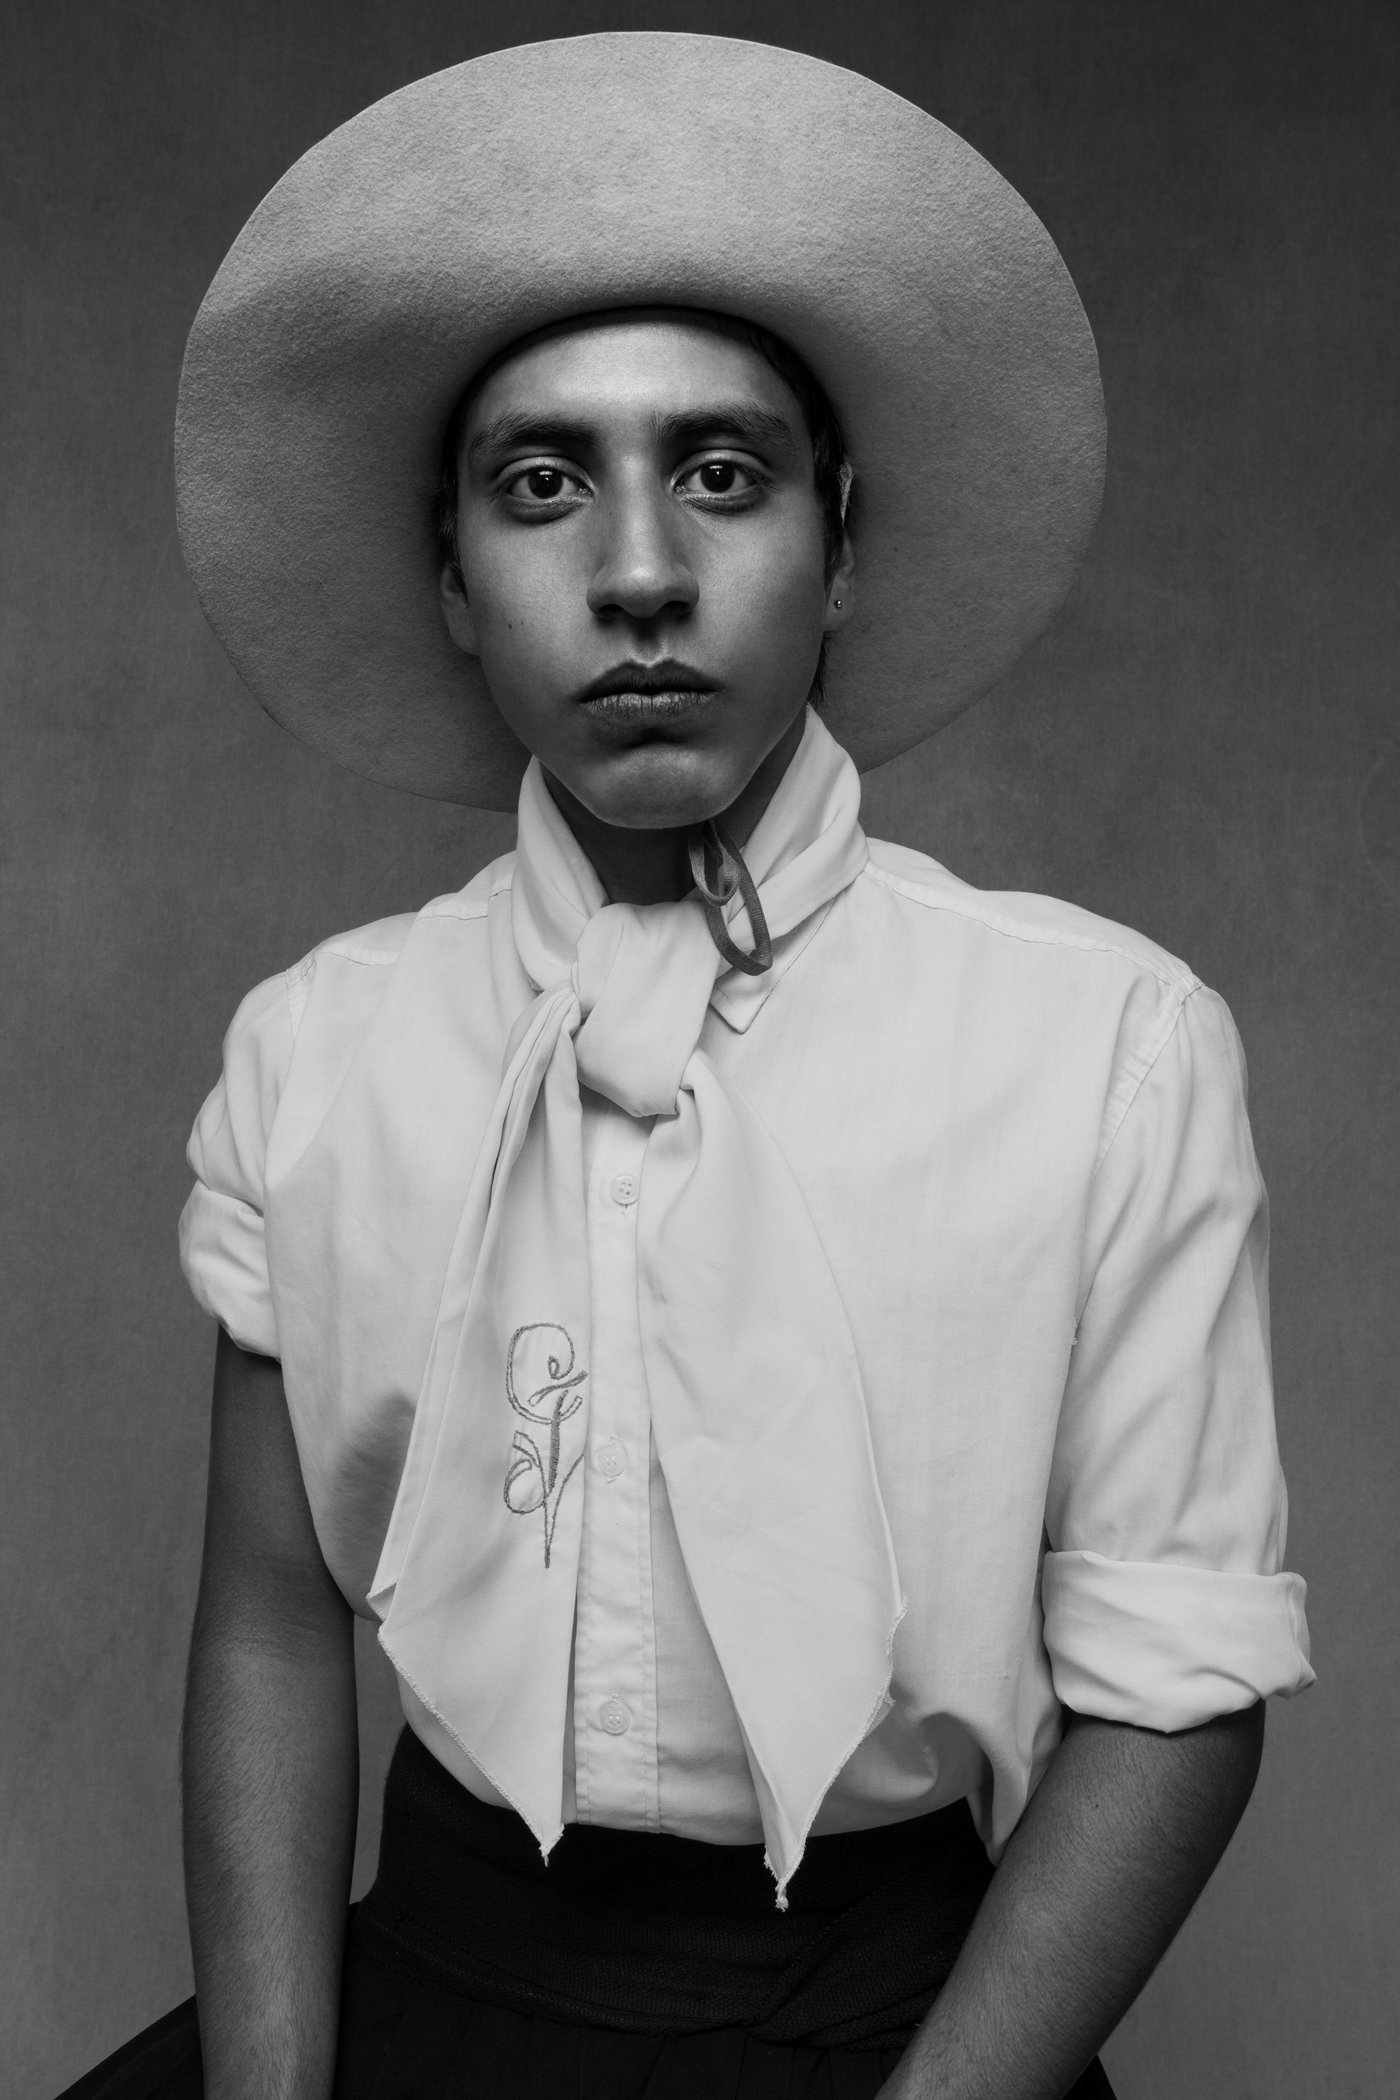 Young Guacho, From the series 'Stars to the Sun', 2012. © Pieter Henket